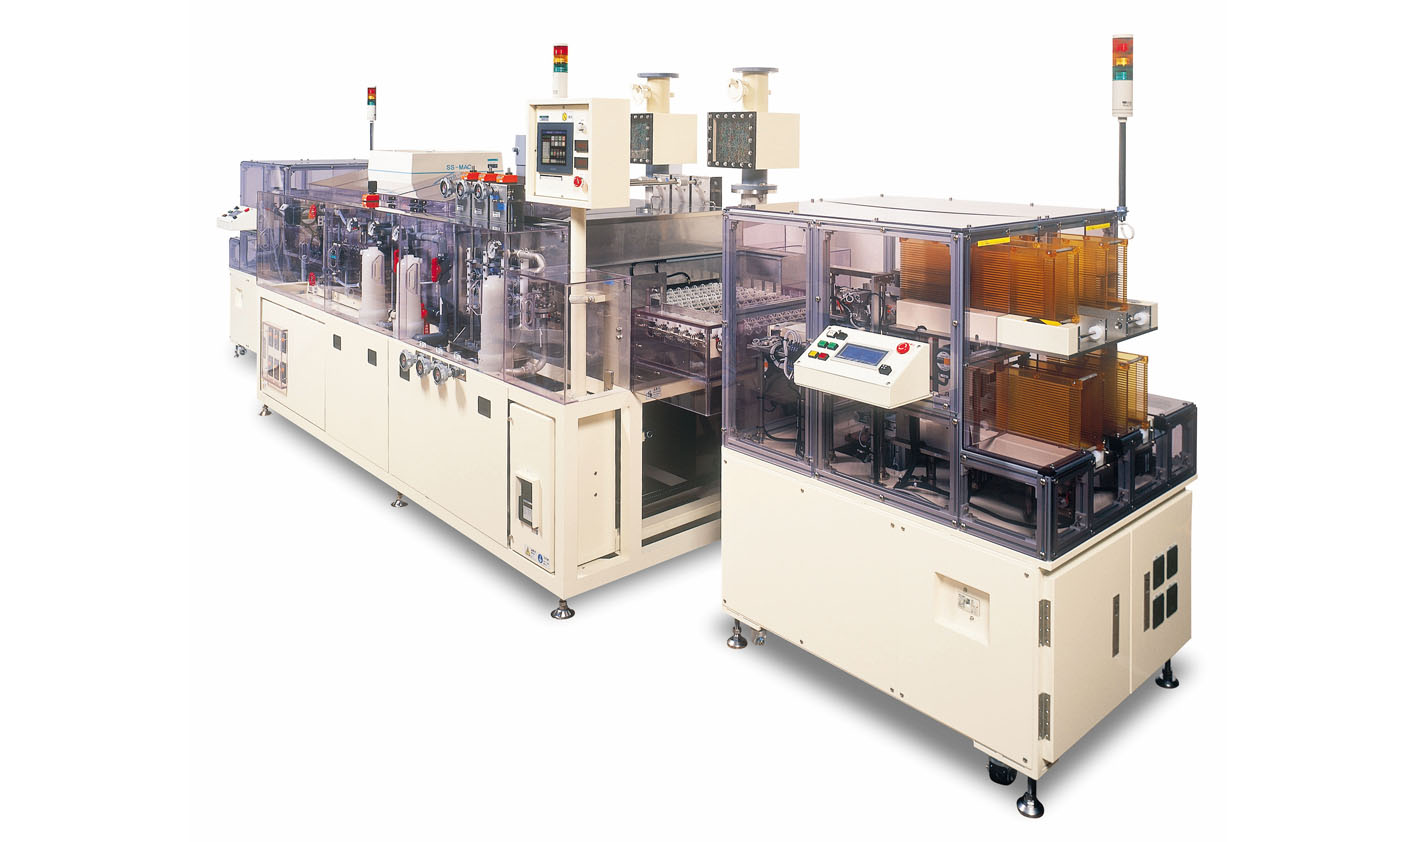 FPD manufacturing equipment